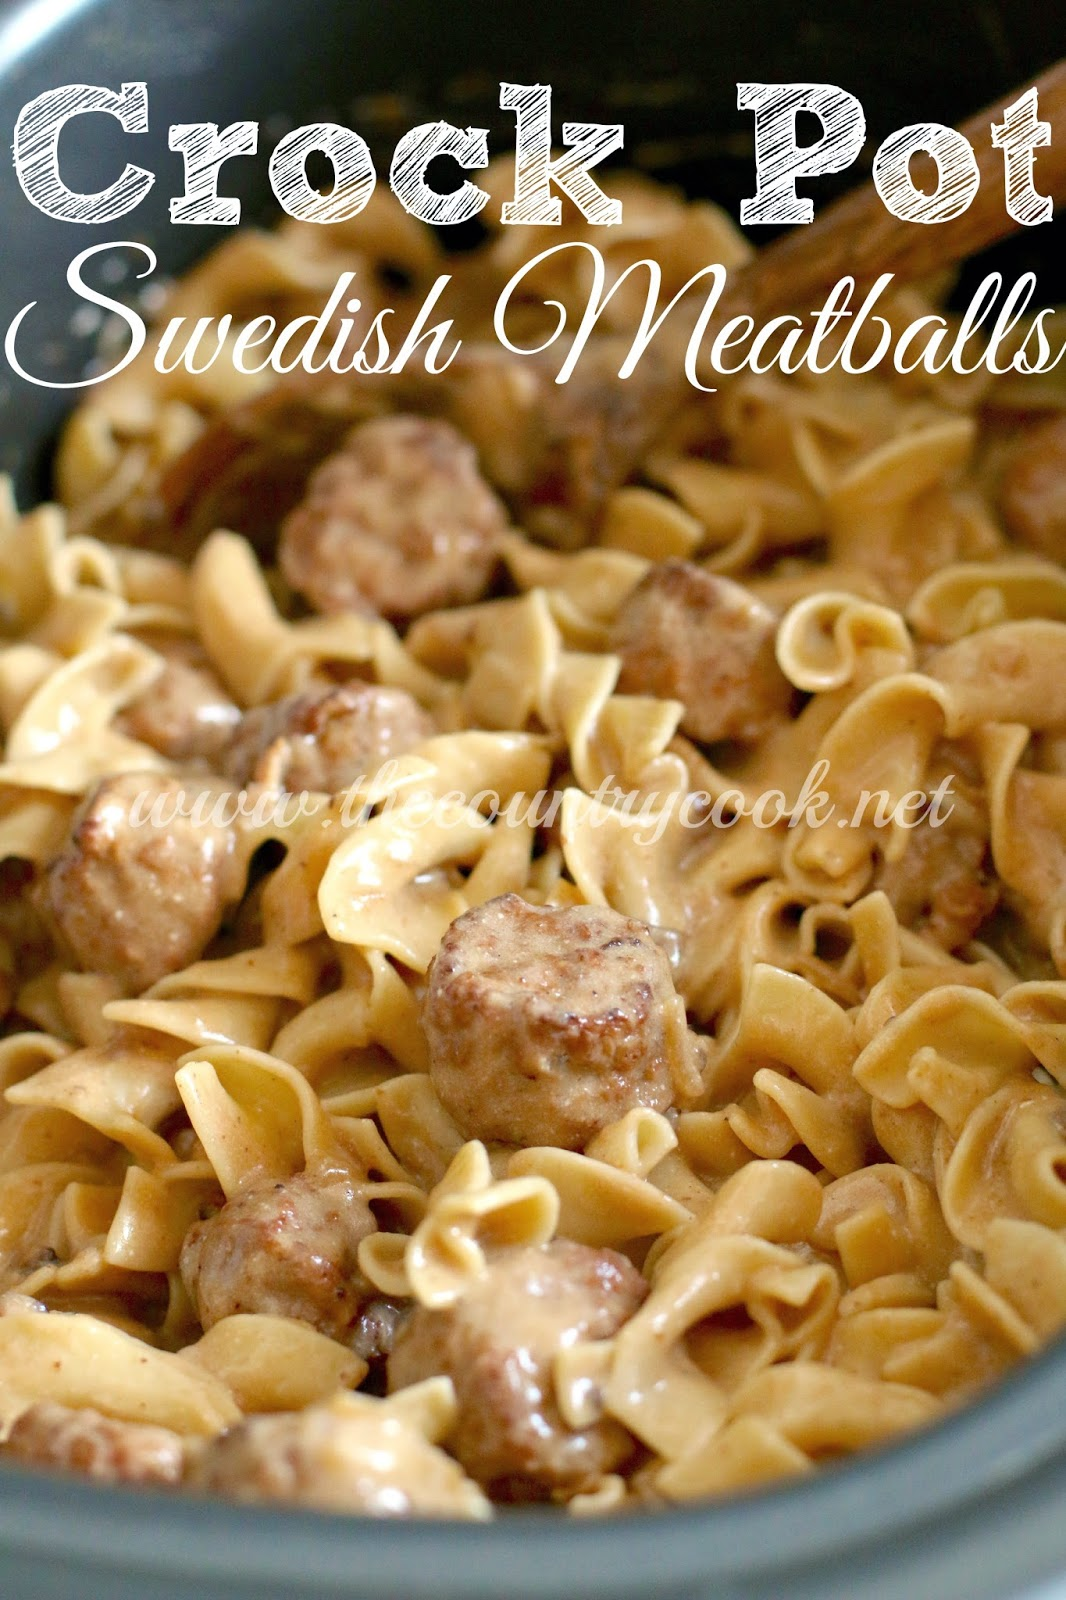 Crock Pot Swedish Meatballs - The Country Cook